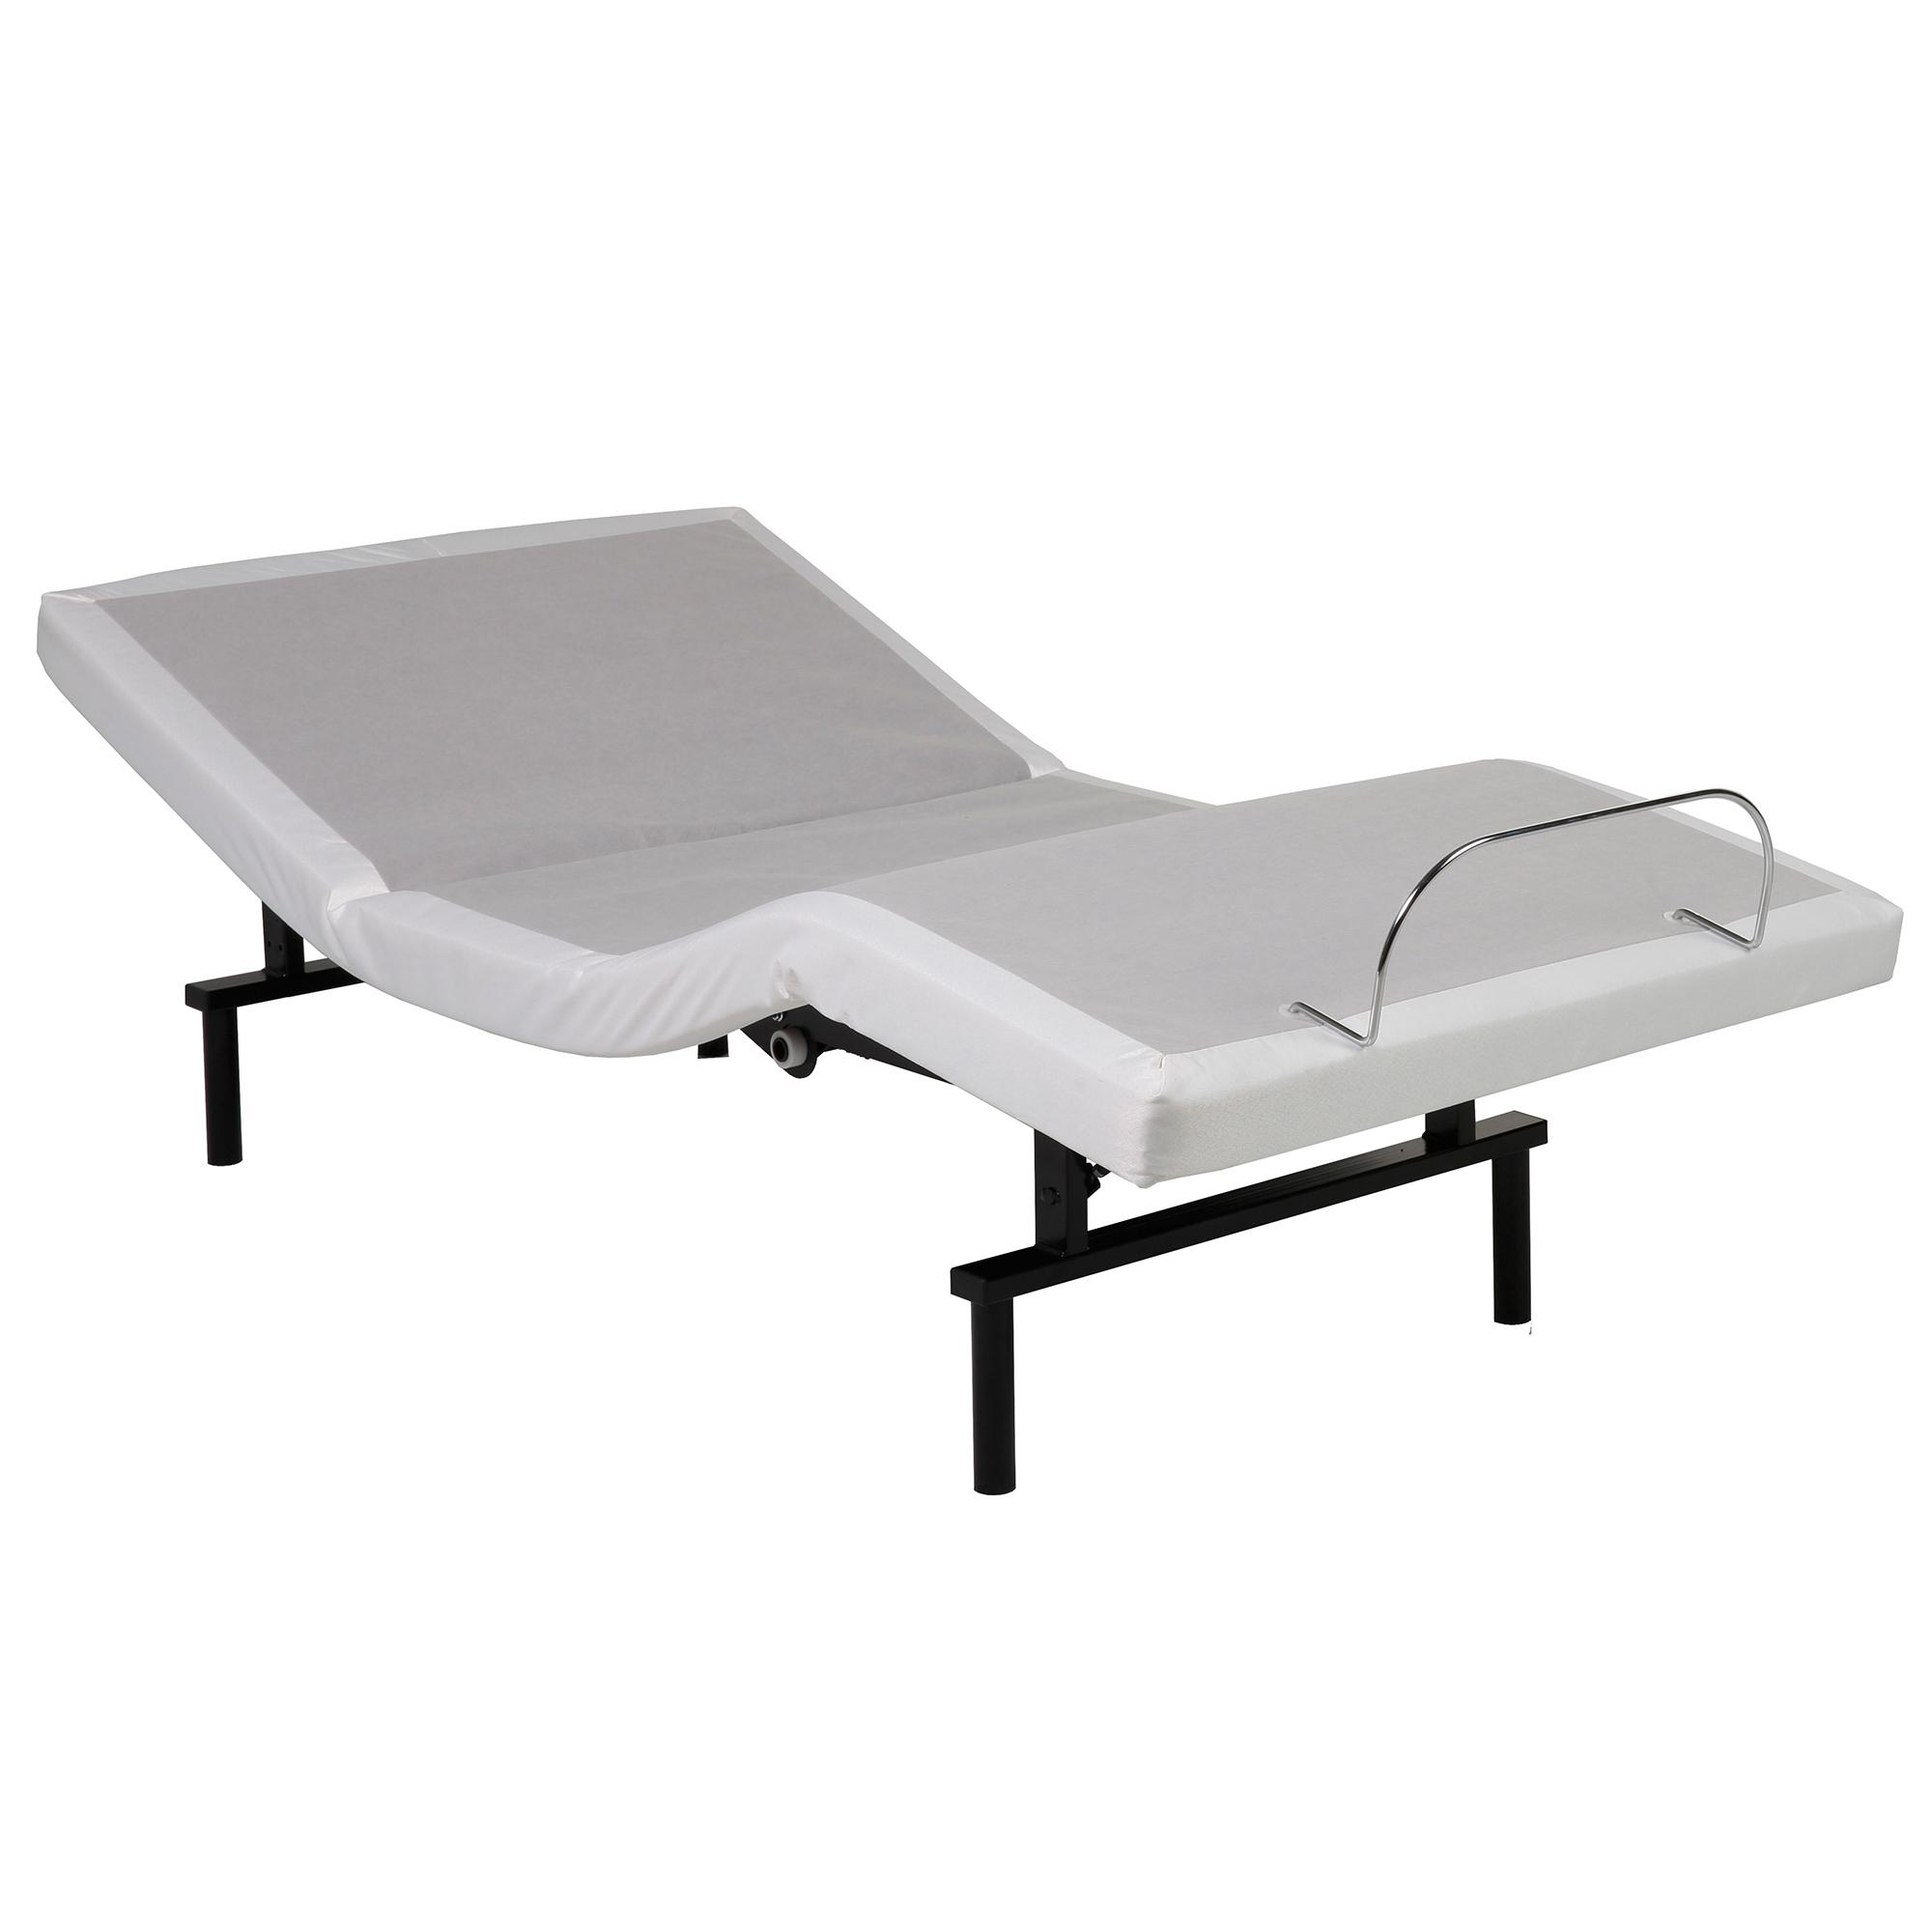 Adjustable Beds That Raise And Lower : Vibrance adjustable bed base with head and